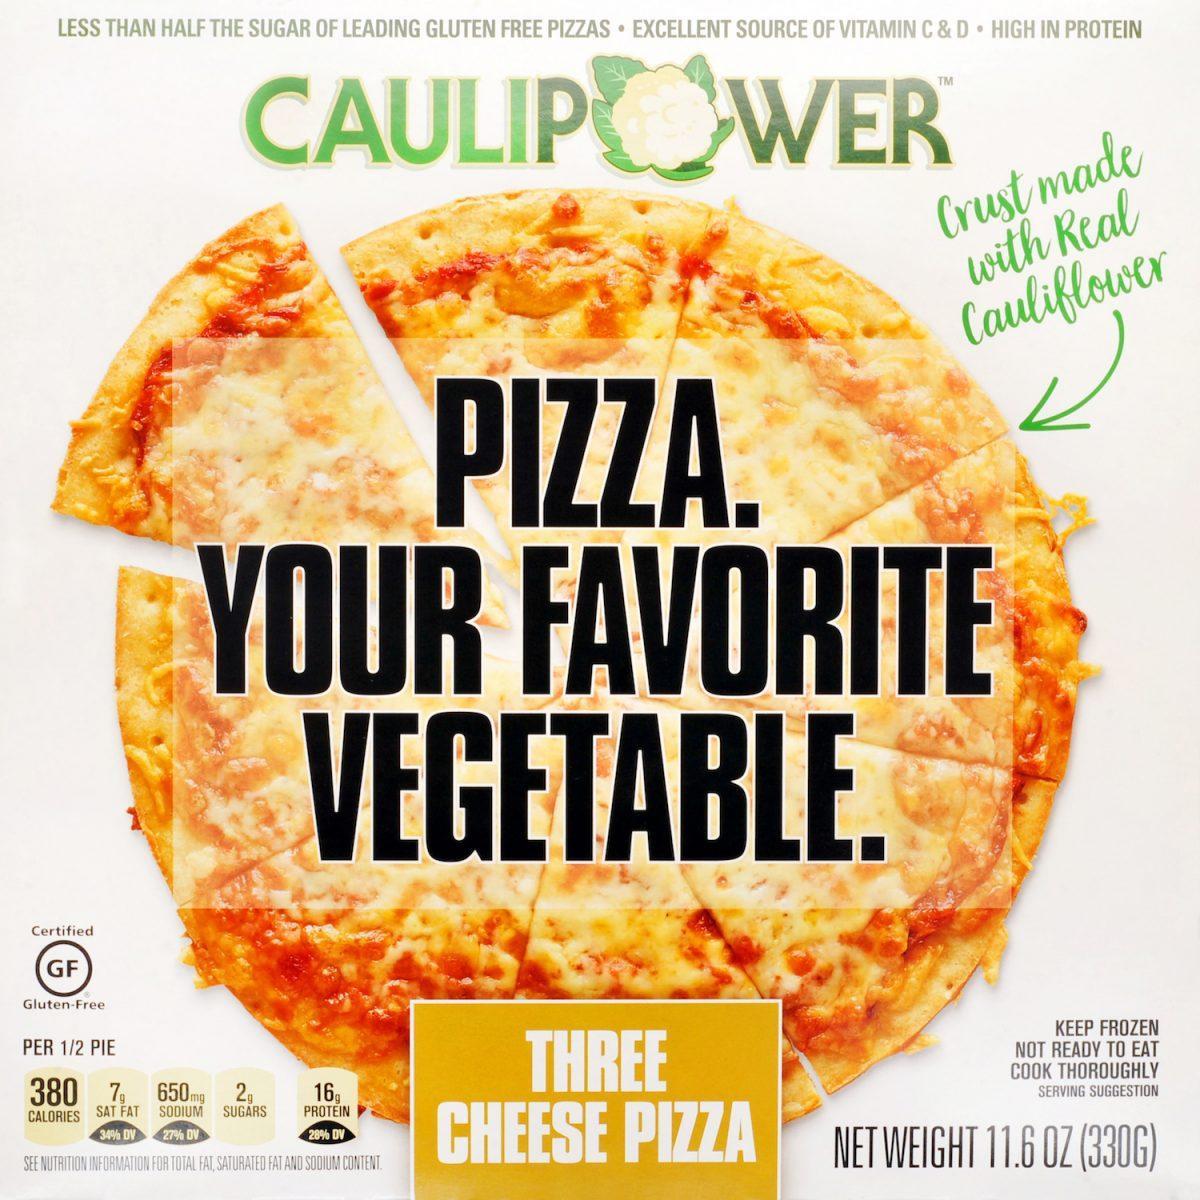 Frozen Cauliflower Pizza  Caulipower How This Corporate Executive Left Her